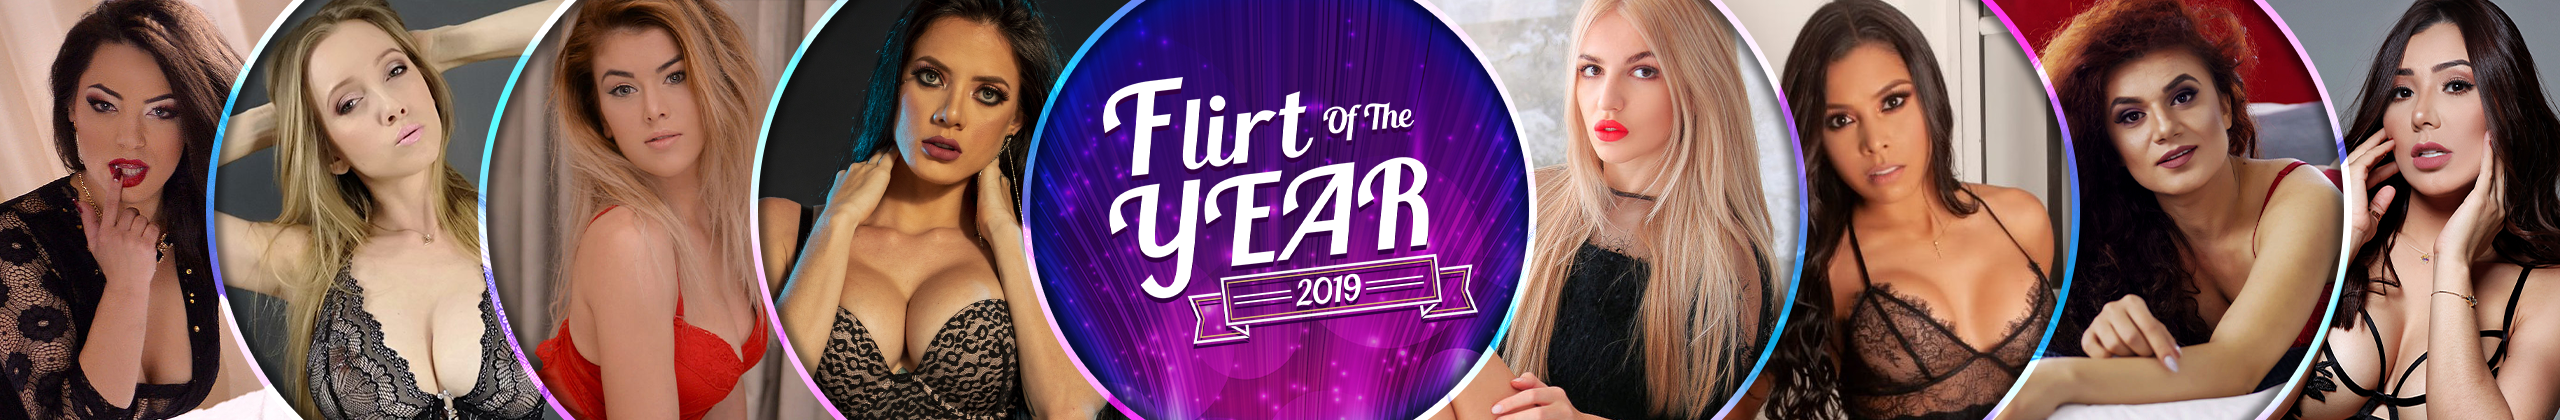 flirt of the year banner